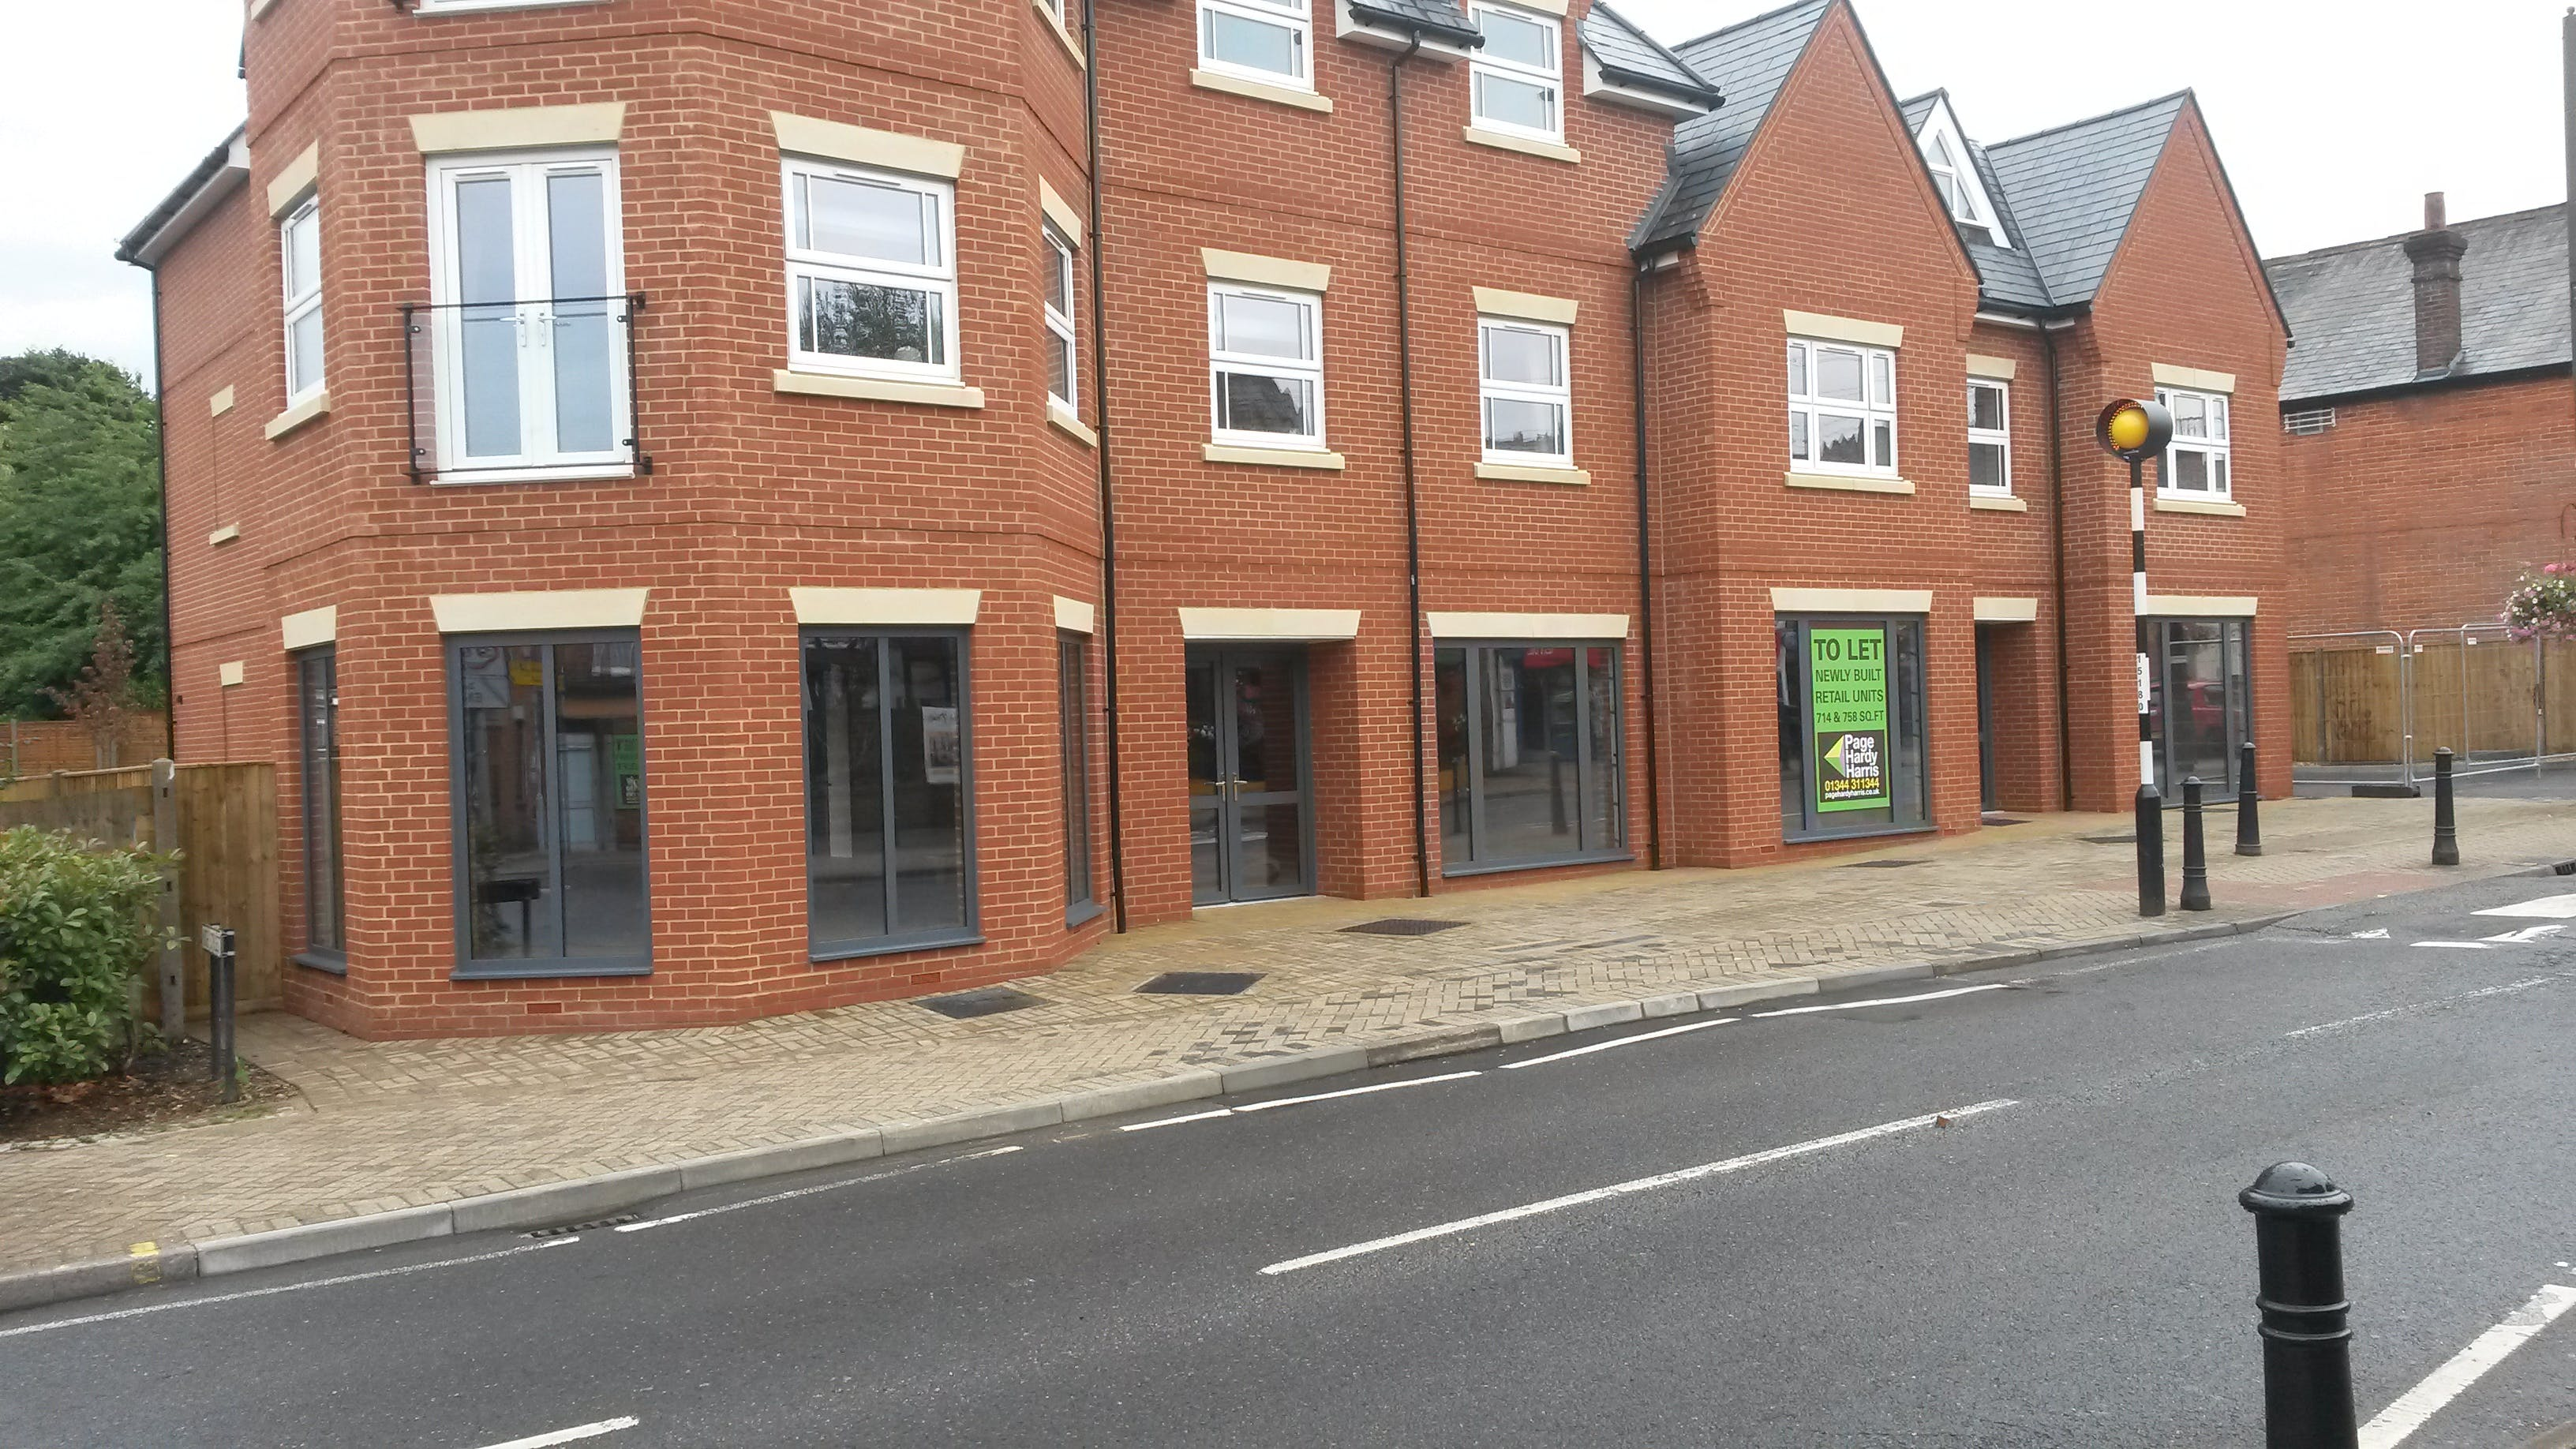 2 High Street, Crowthorne, Retail To Let / For Sale - 20180816_133053.jpg